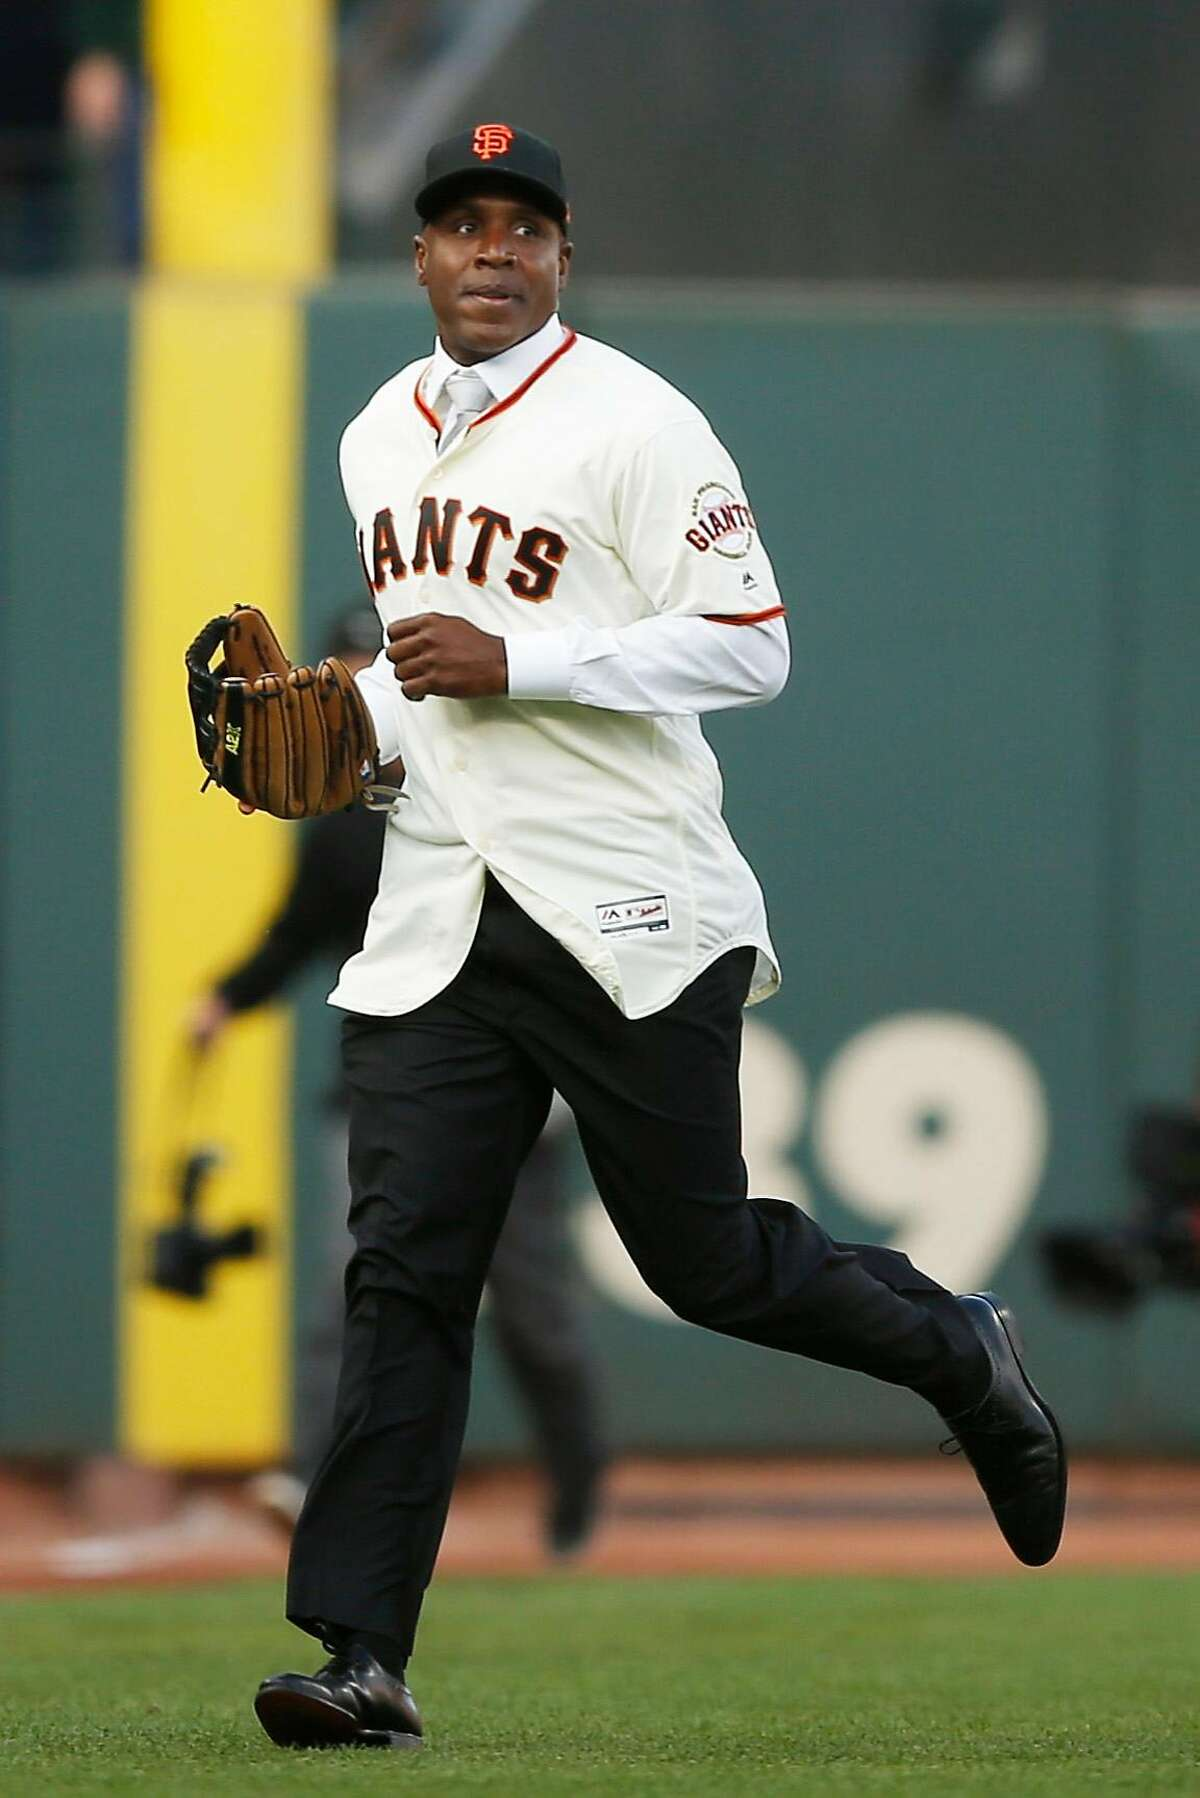 Barry Bonds acknowledges the crowd in the outfield during his uniform number retirement ceremony at AT&T Park on Saturday, Aug. 11, 2018, in San Francisco, Calif. The San Francisco Giants retired number 25 in honor of Bonds' historic career with the Giants from 1993-2007.